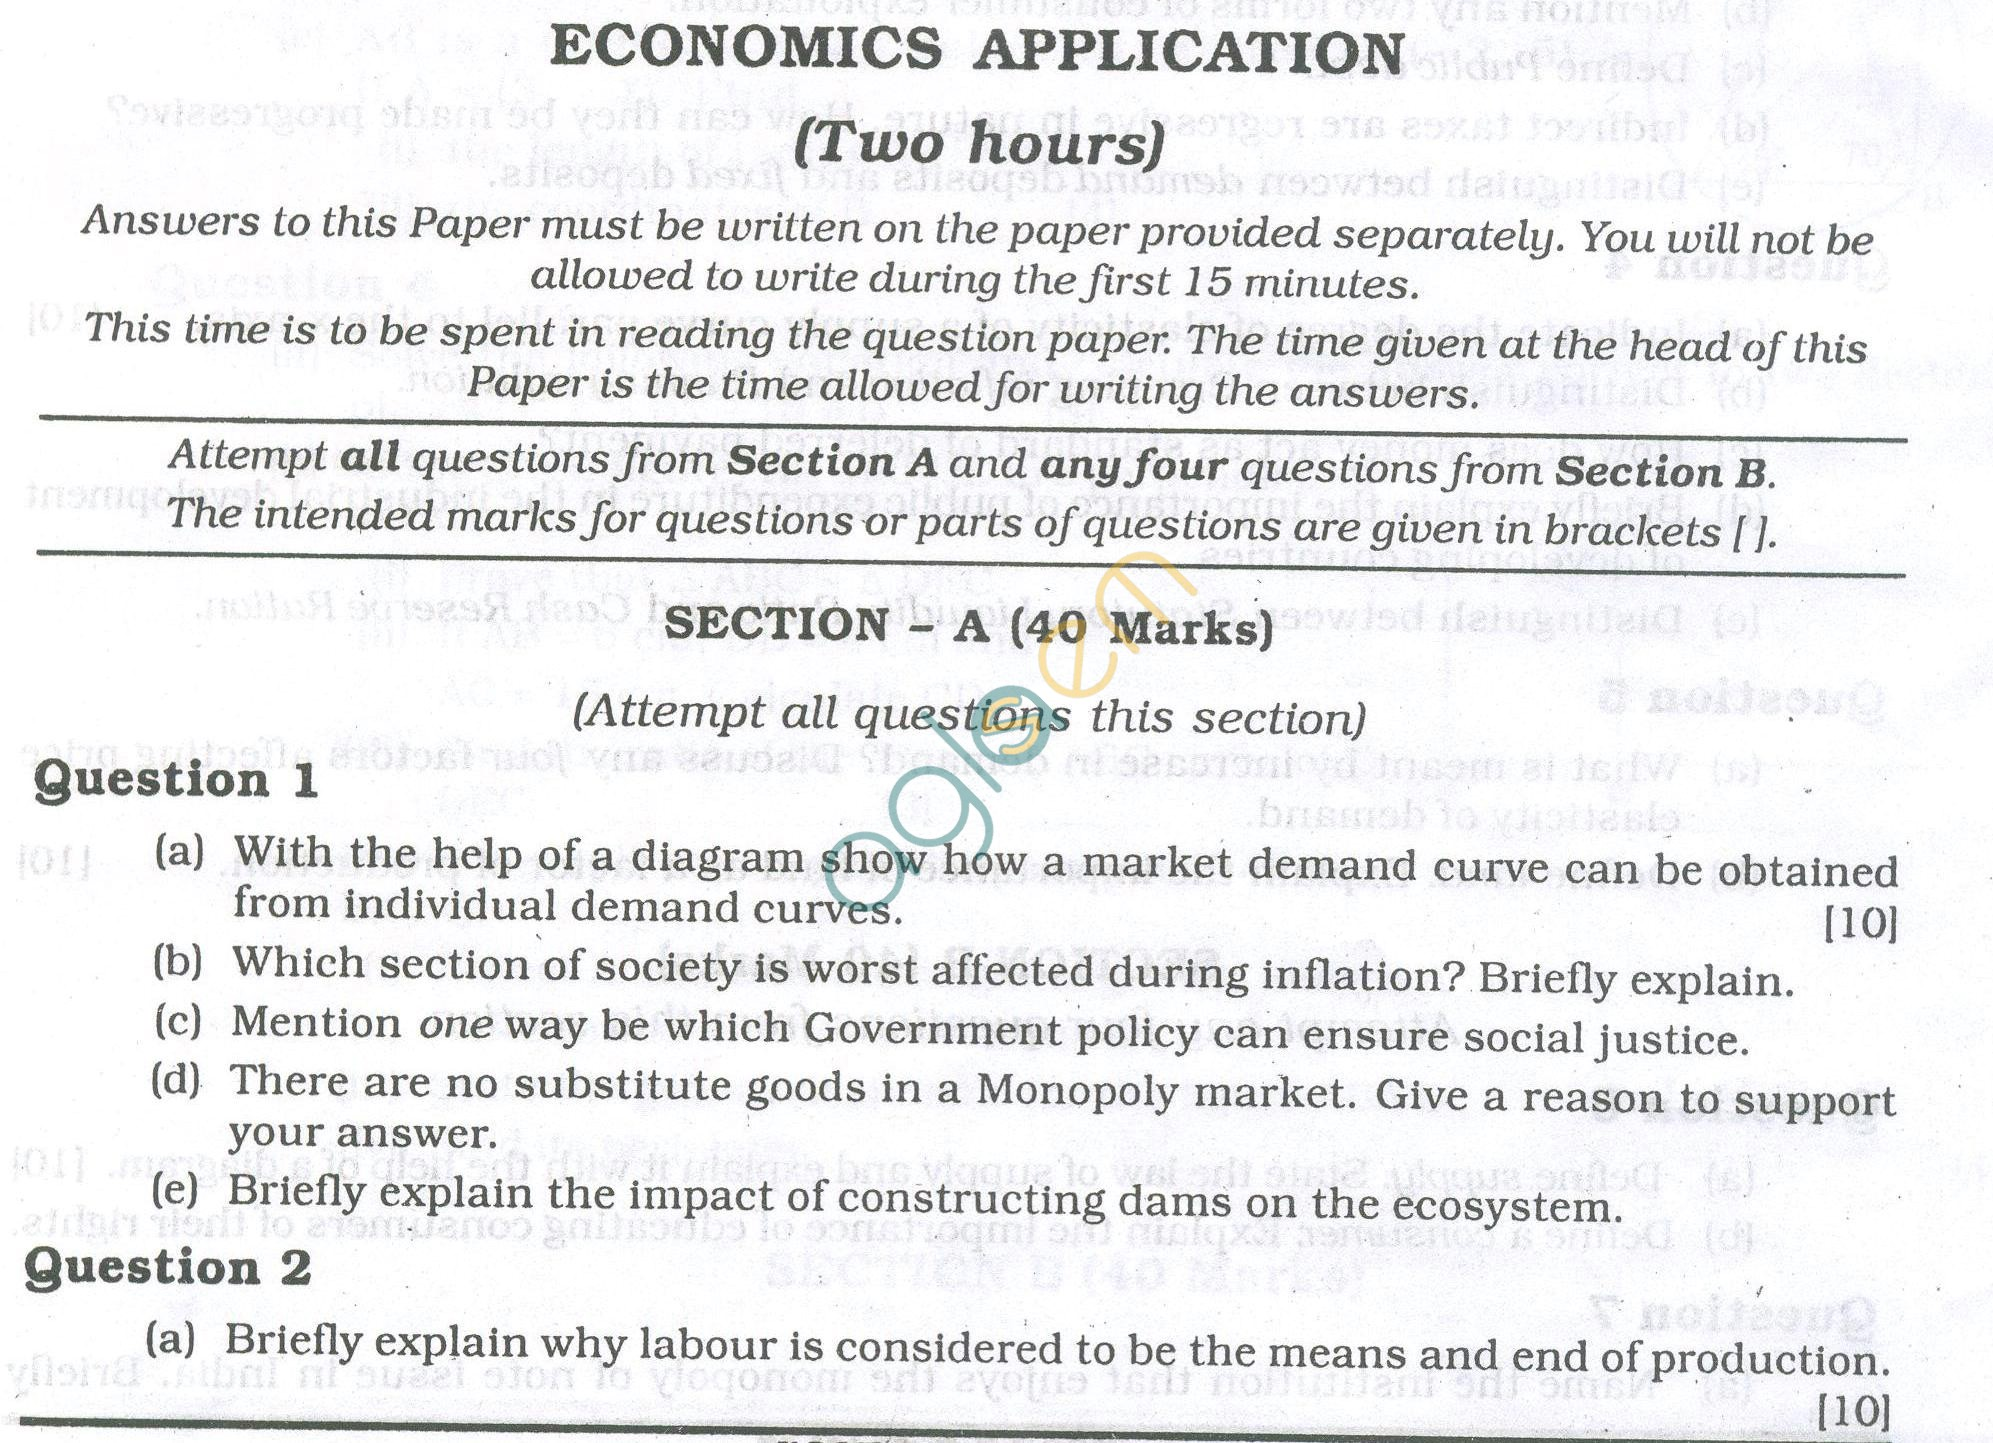 ICSE Question Papers 2013 for Class 10 - Economic Applications